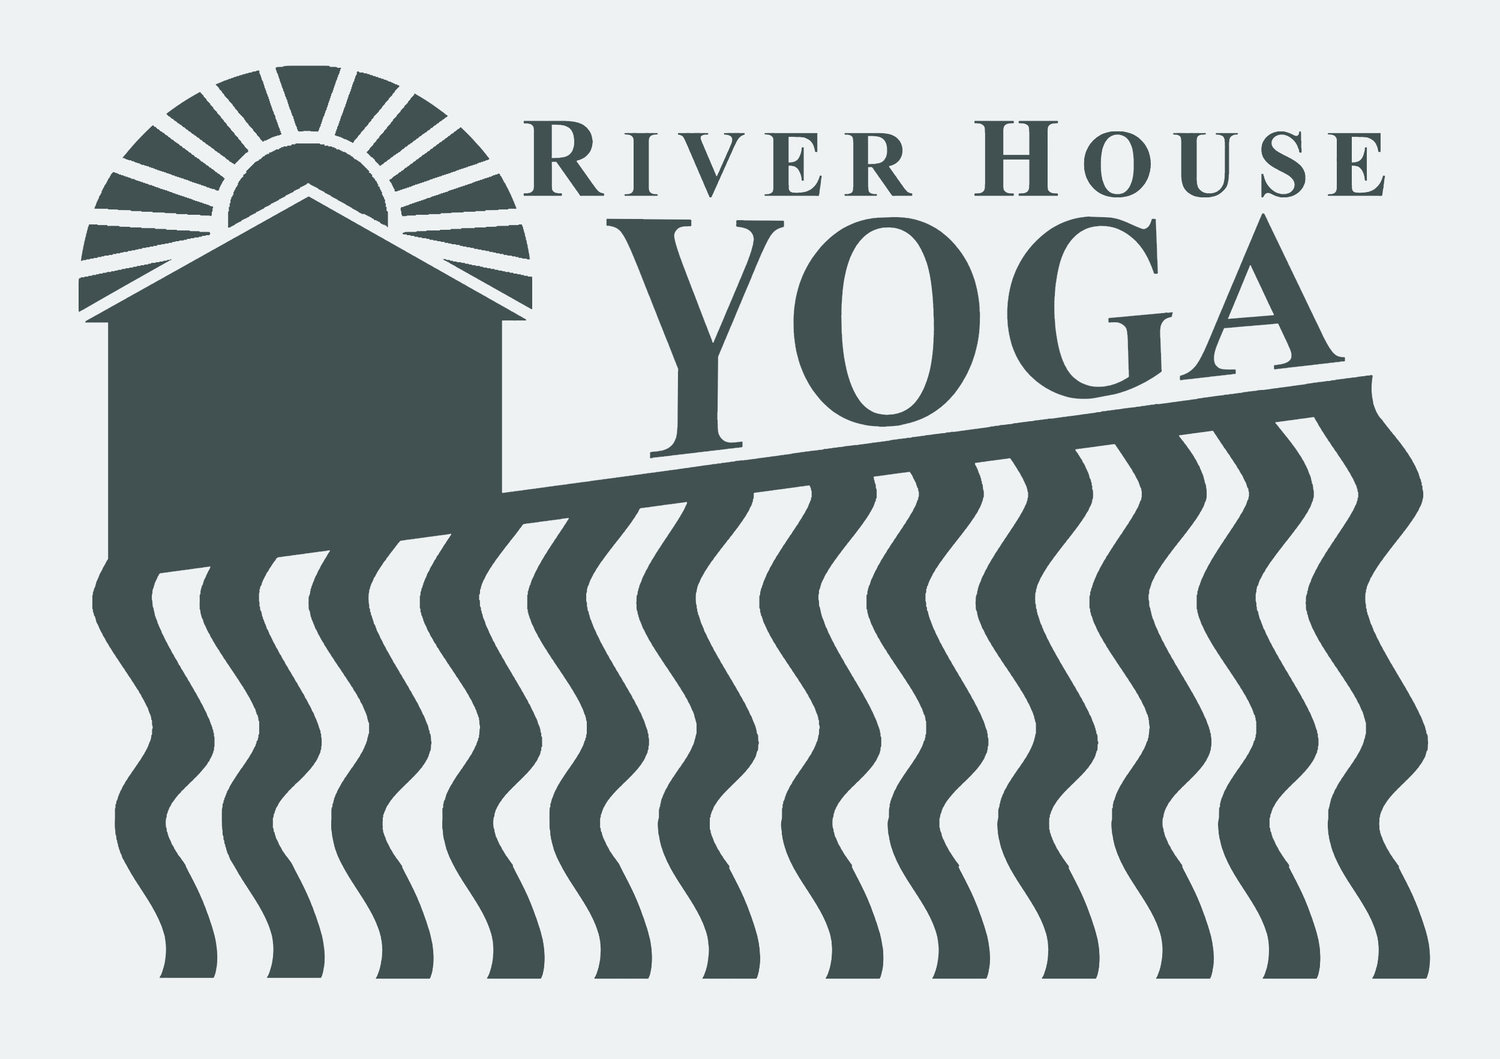 River House Yoga